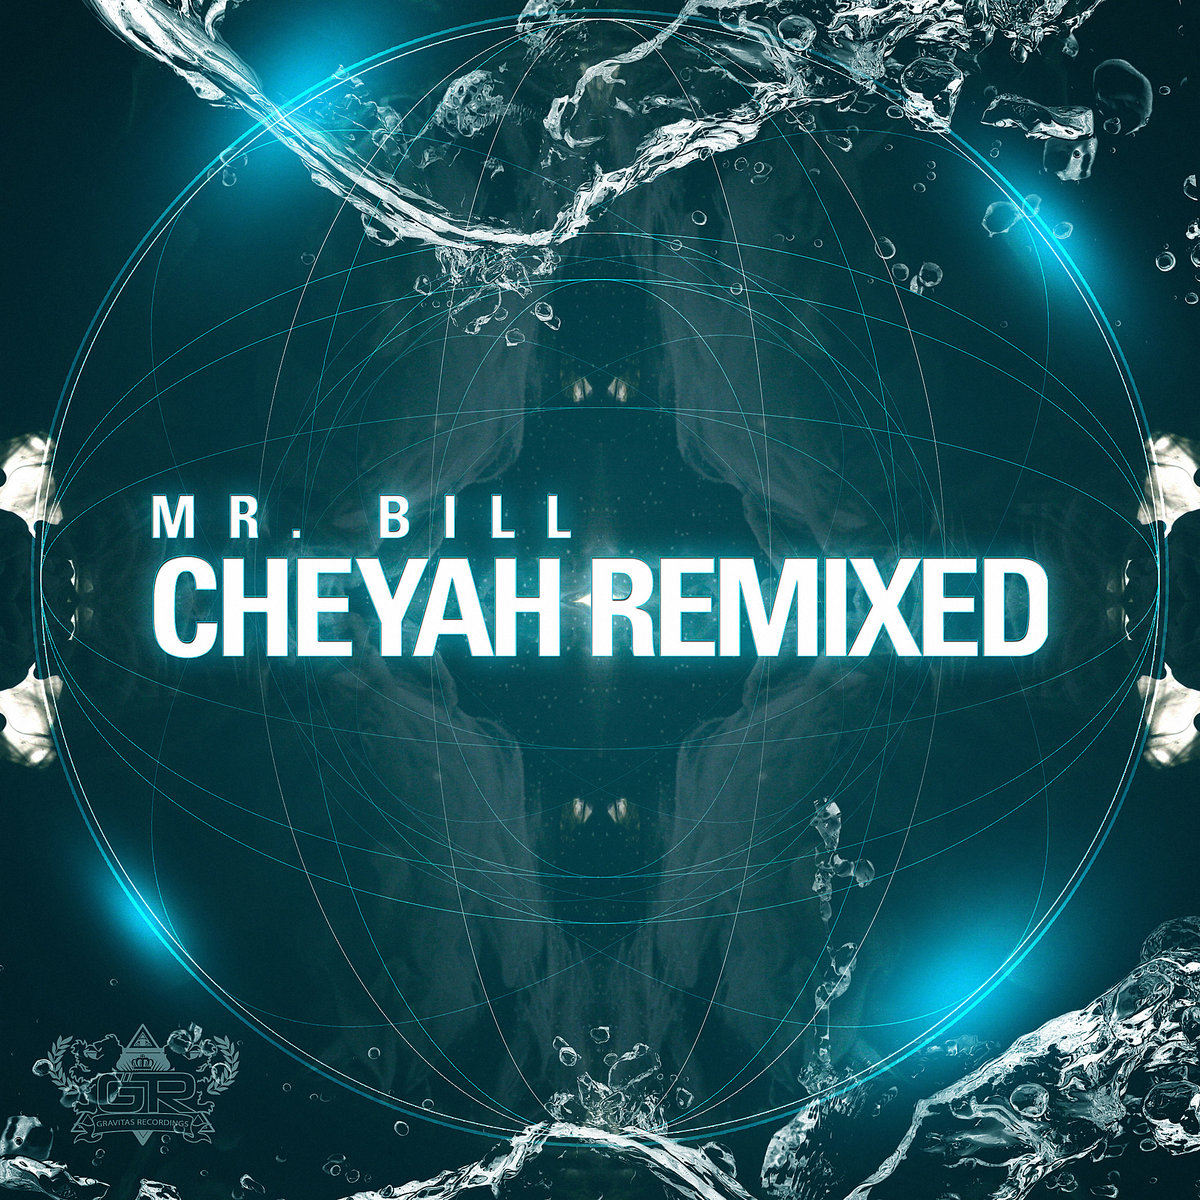 Mr. Bill - Cheyah (Original Mix) @ 'Cheyah Remixed' album (australia, idm)